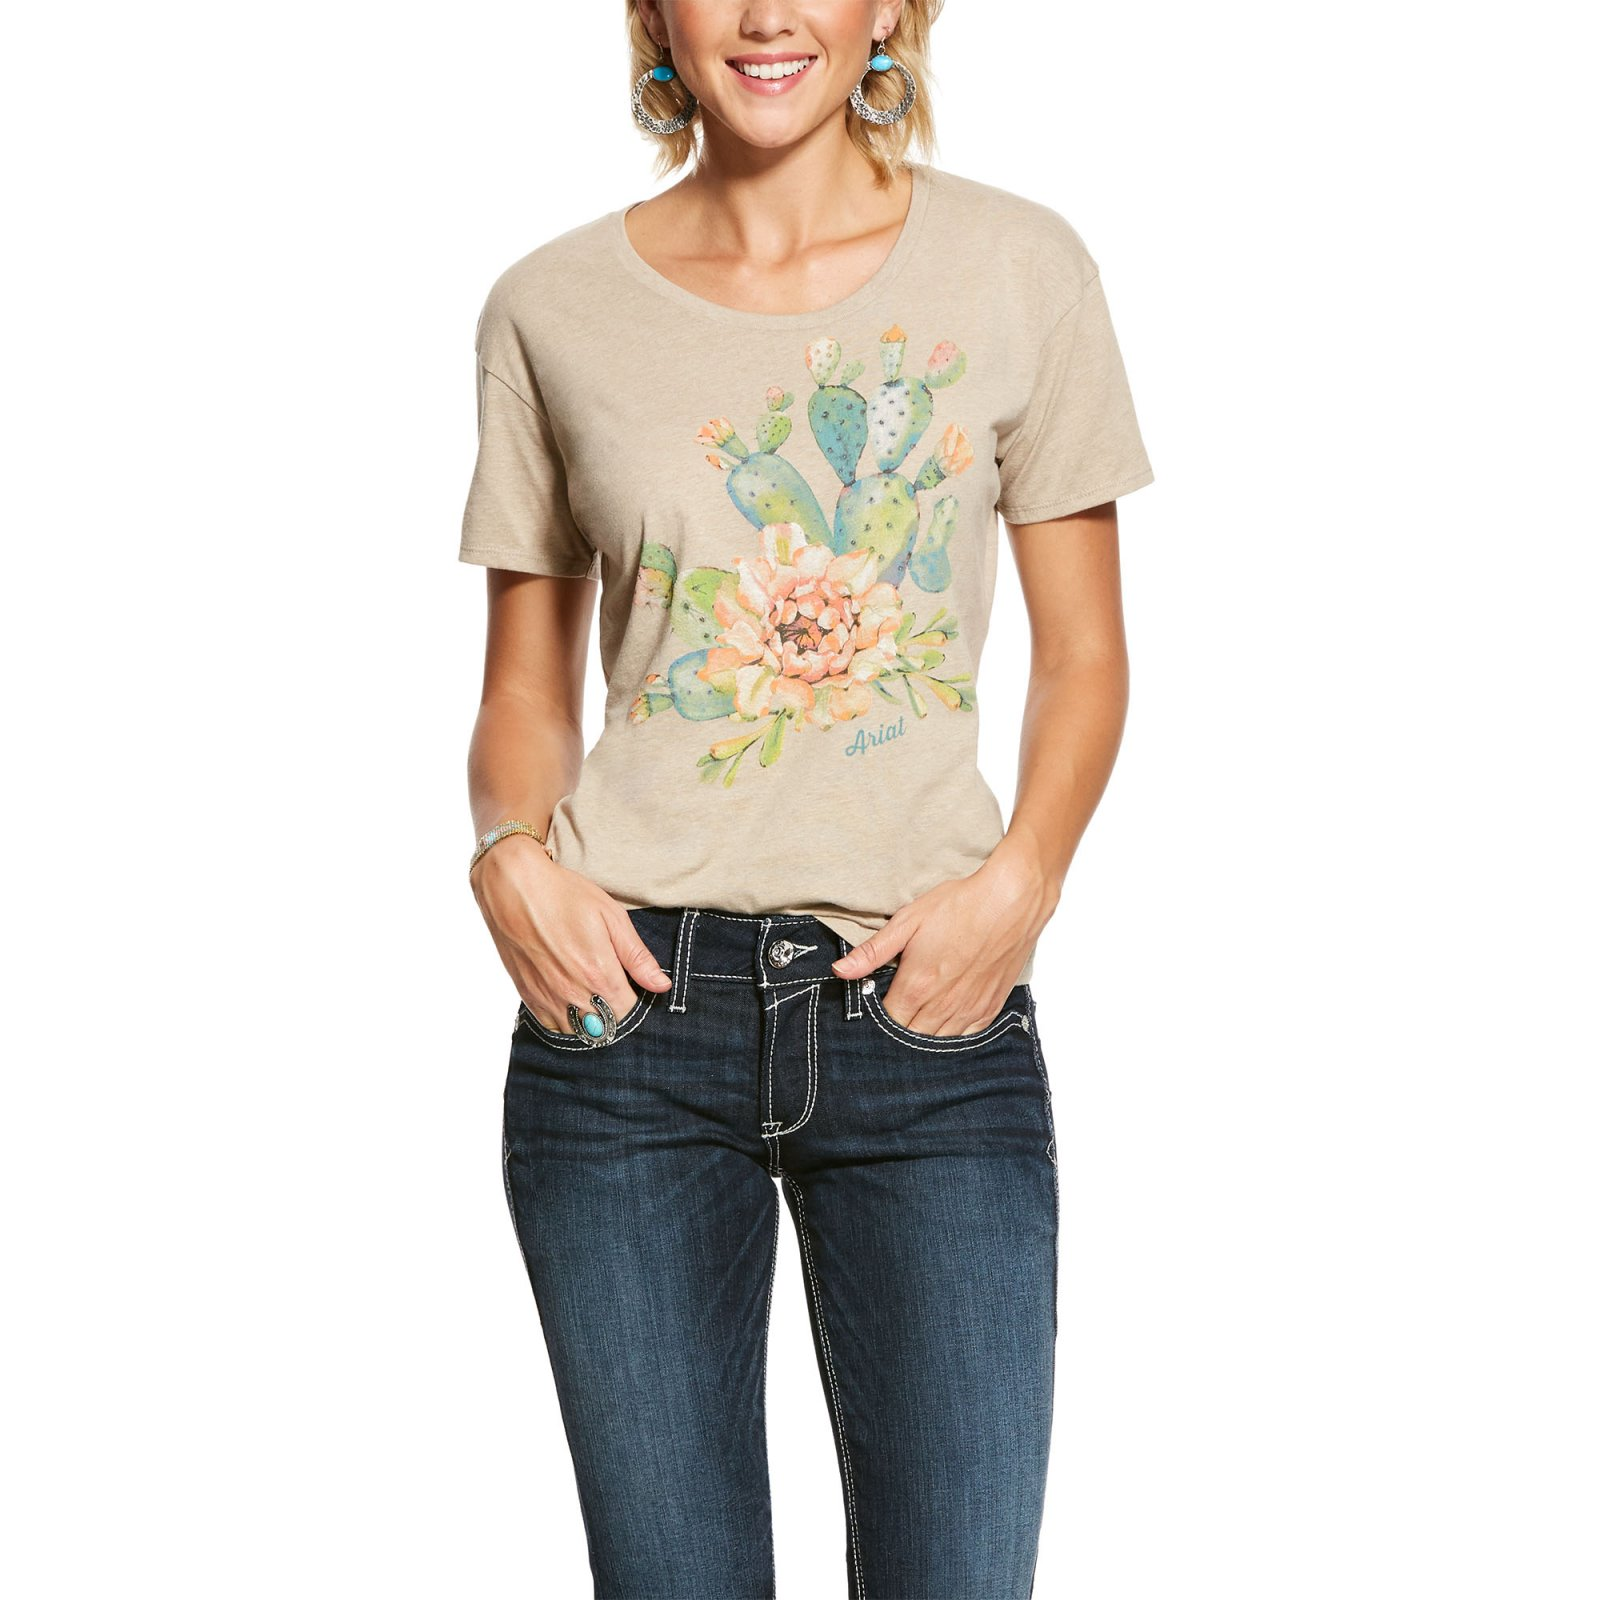 Blossom Tee from Ariat